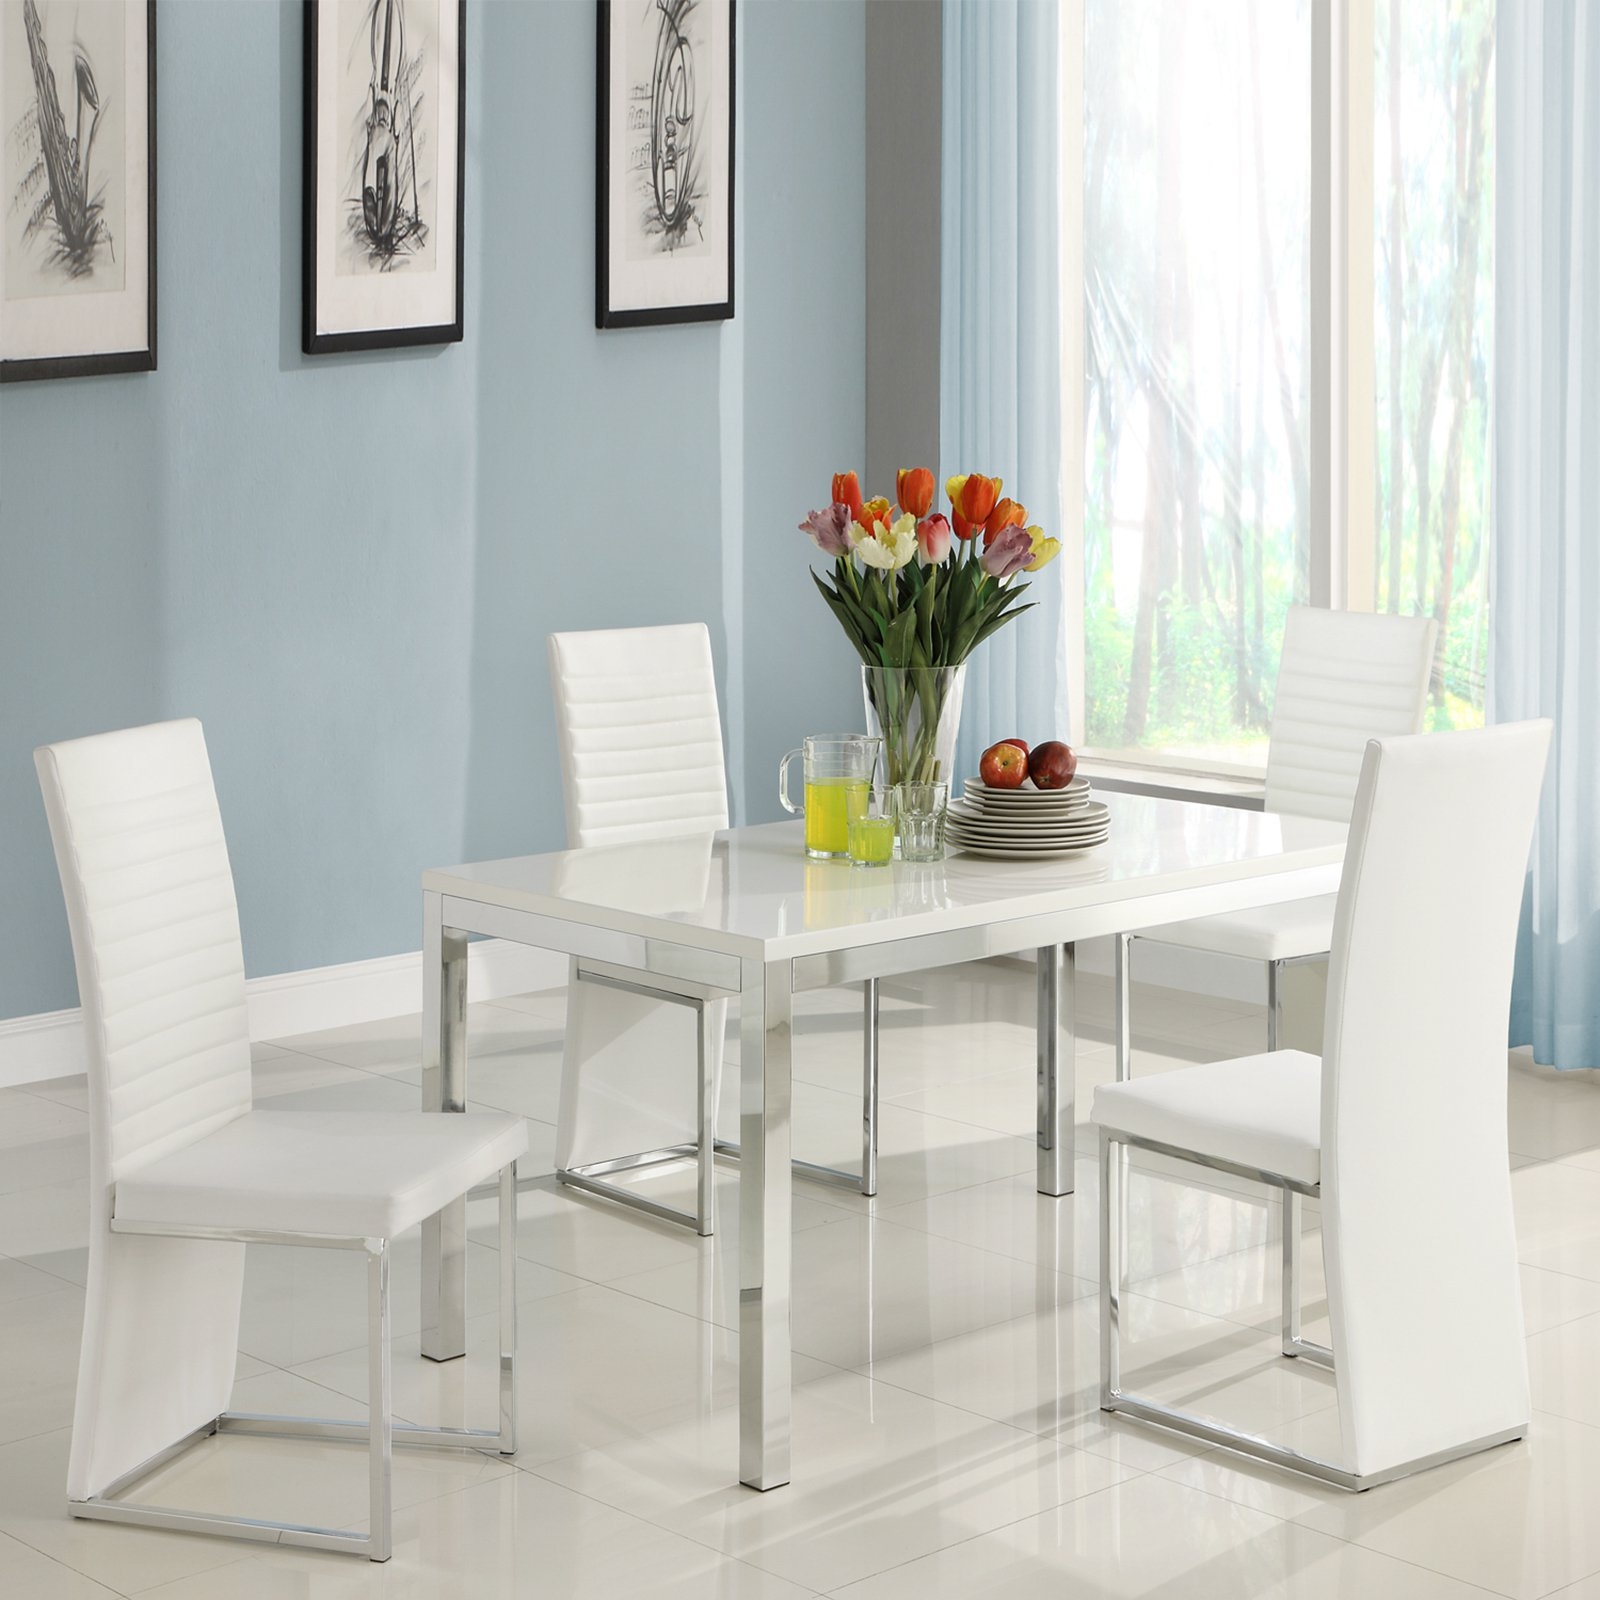 Genial Homelegance Clarice 5 Piece Chrome Dining Table Set   Modern White    Walmart.com